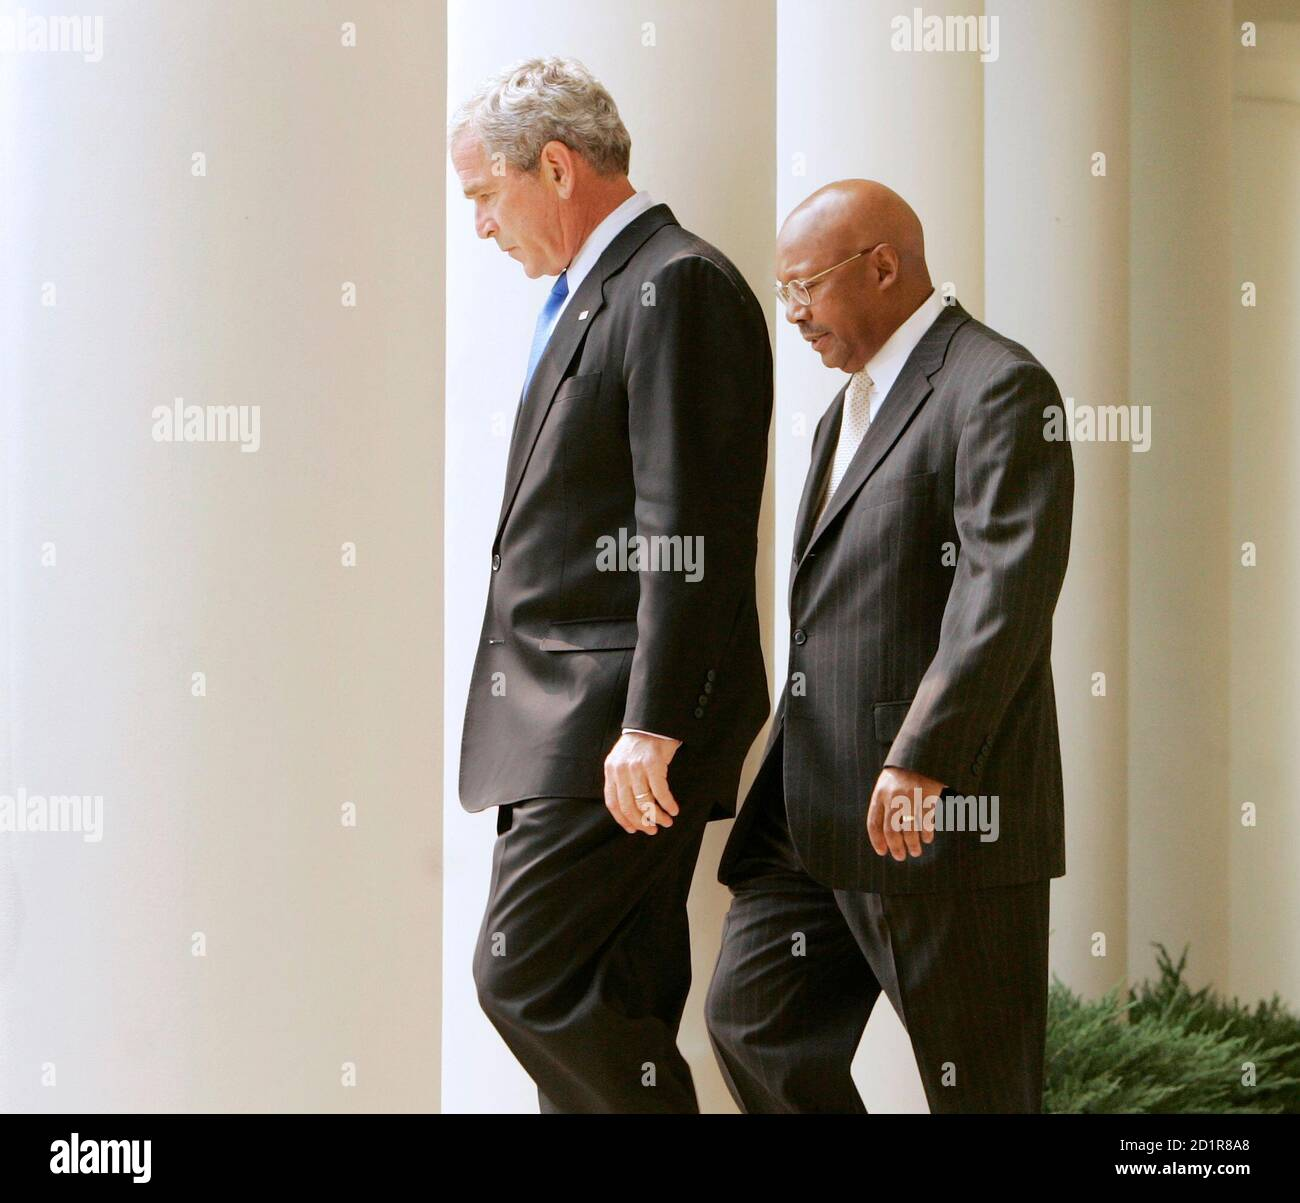 U.S. President George W. Bush (L) walks out to talk about easing the mortgage default crisis with U.S. Secretary of HUD Alphonso Jackson (R) in the Rose Garden of White House in Washington August 31, 2007.    REUTERS/Larry Downing    (UNITED STATES) Stock Photo